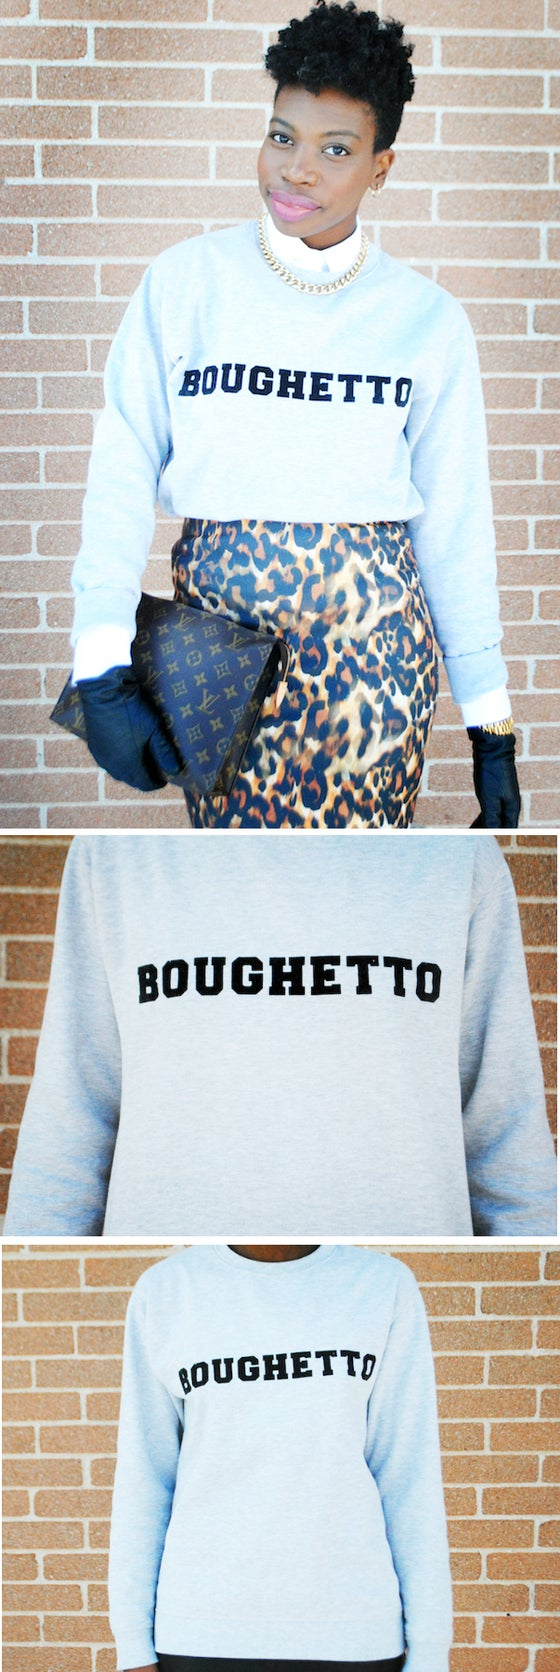 Image of Boughetto Sweatshirt